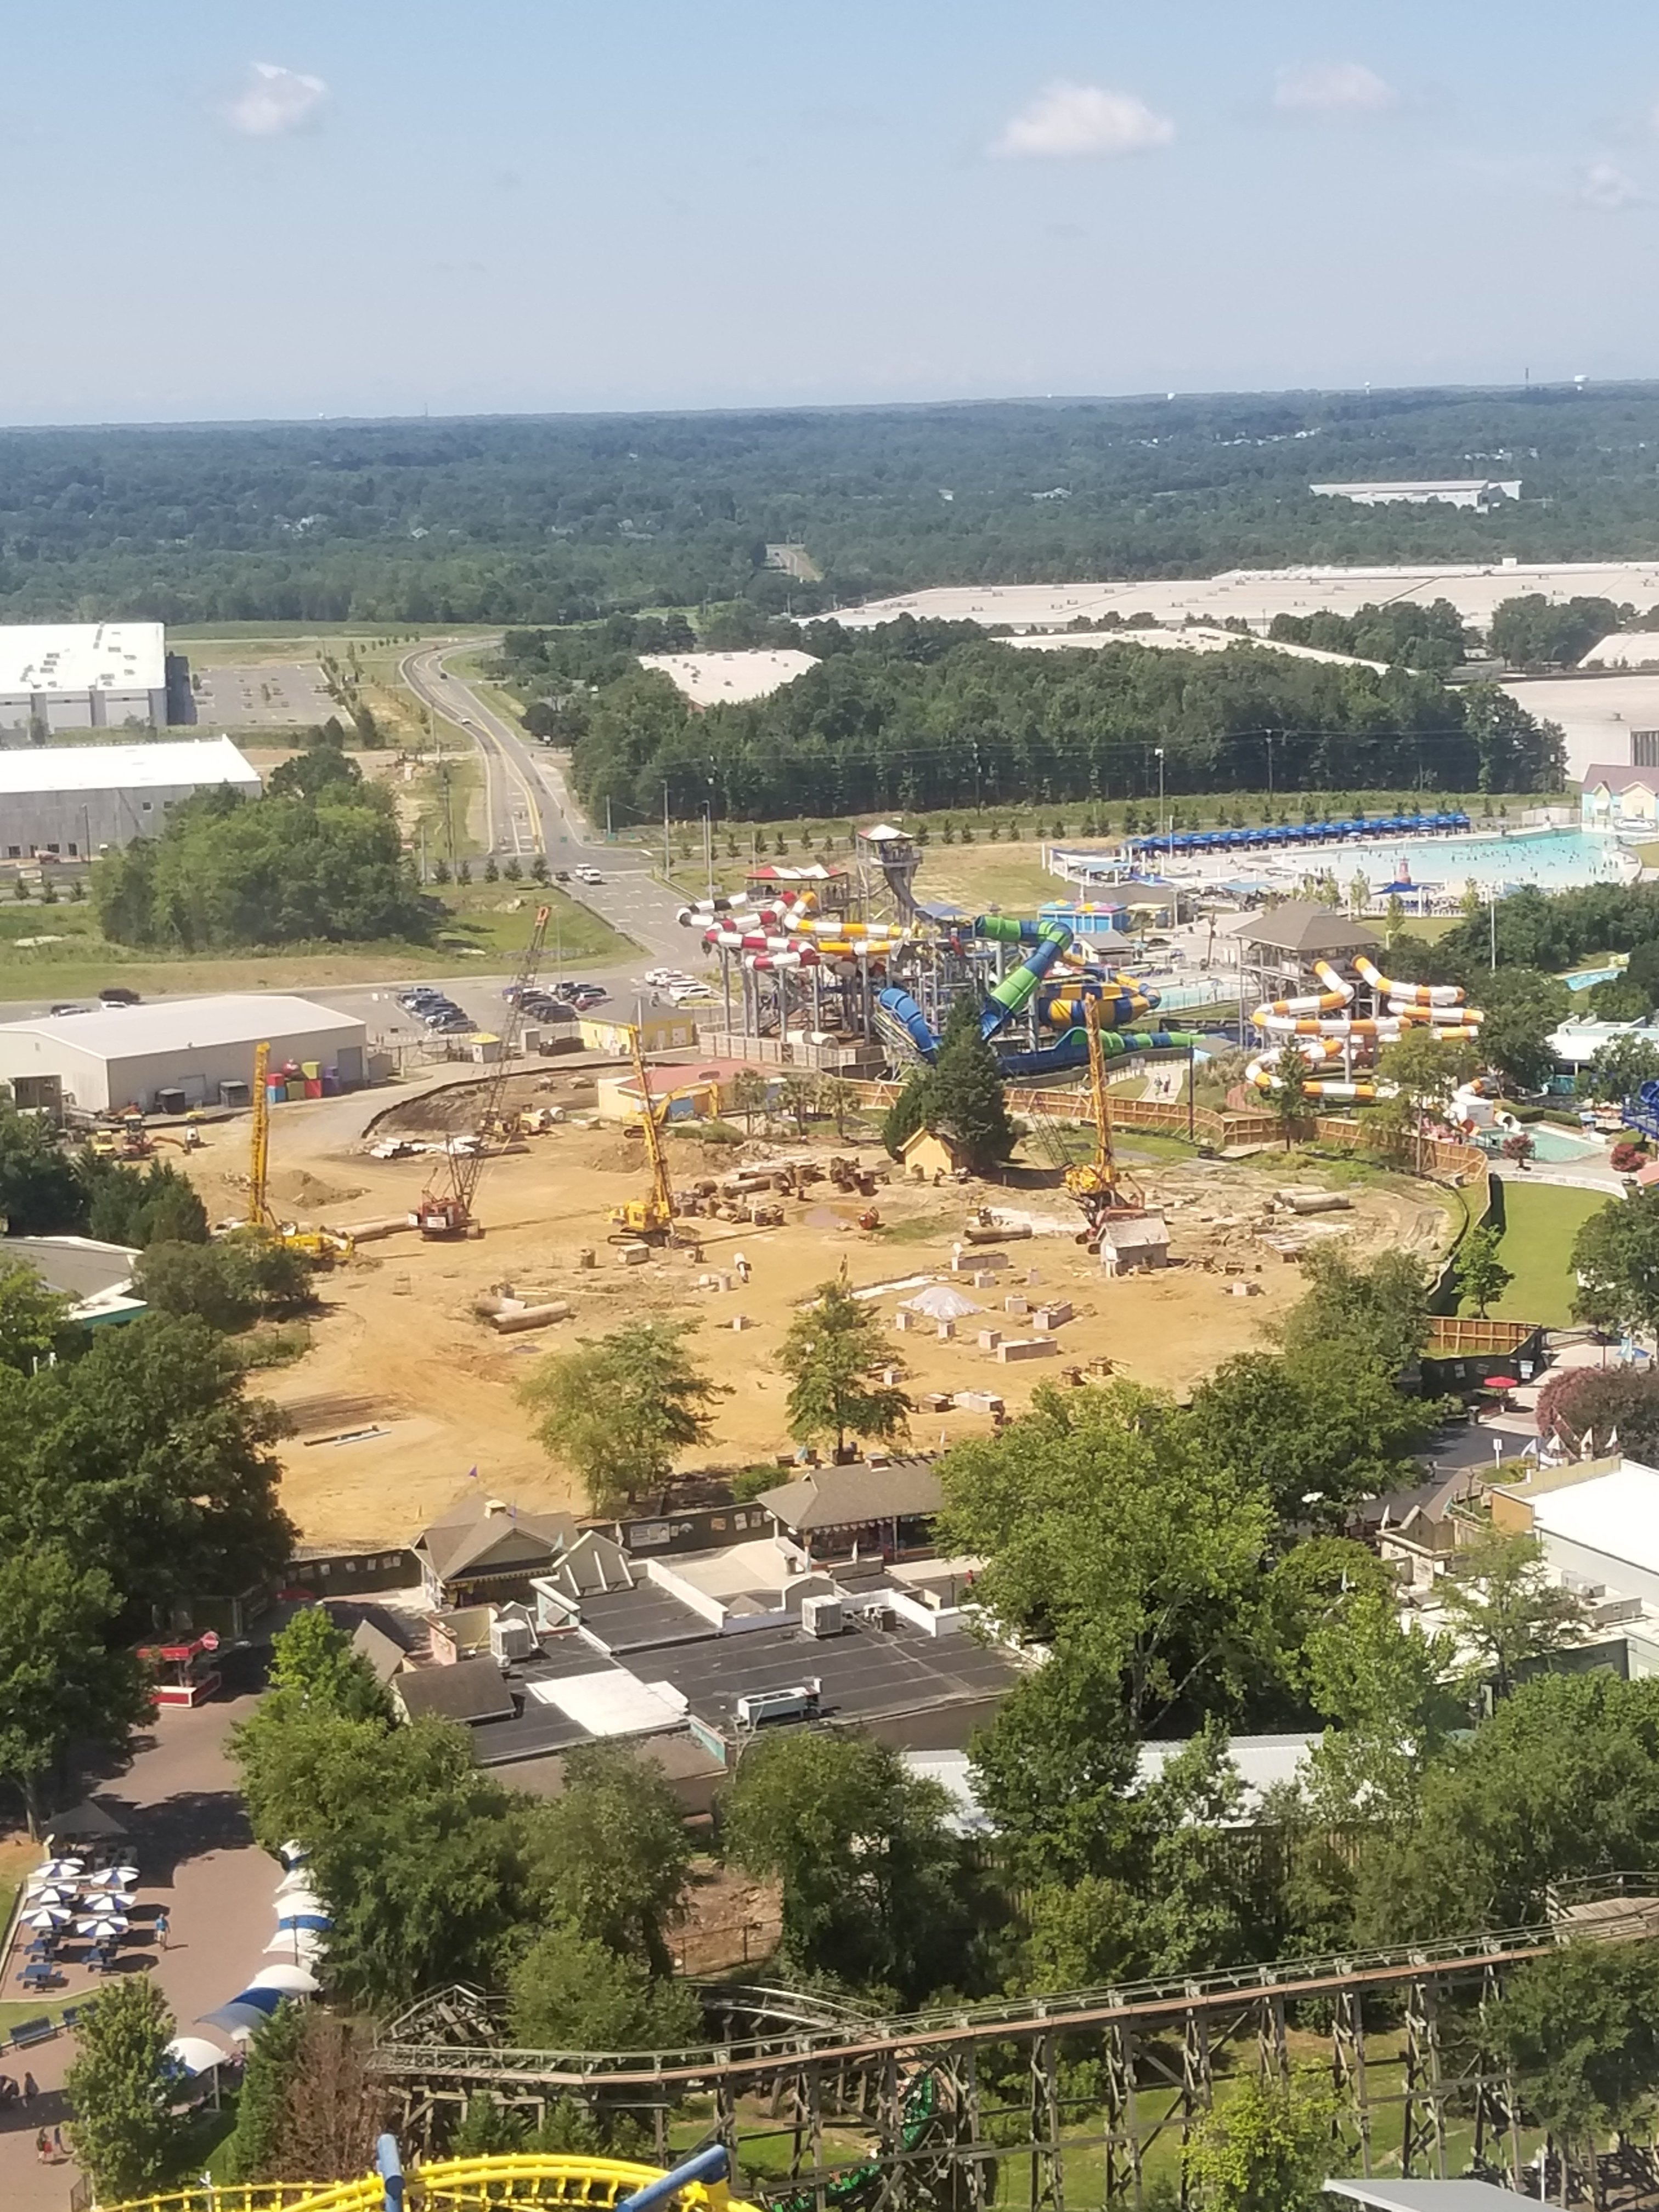 Carowinds - Page 2 - Other Amusement Parks & Industry News - Kings